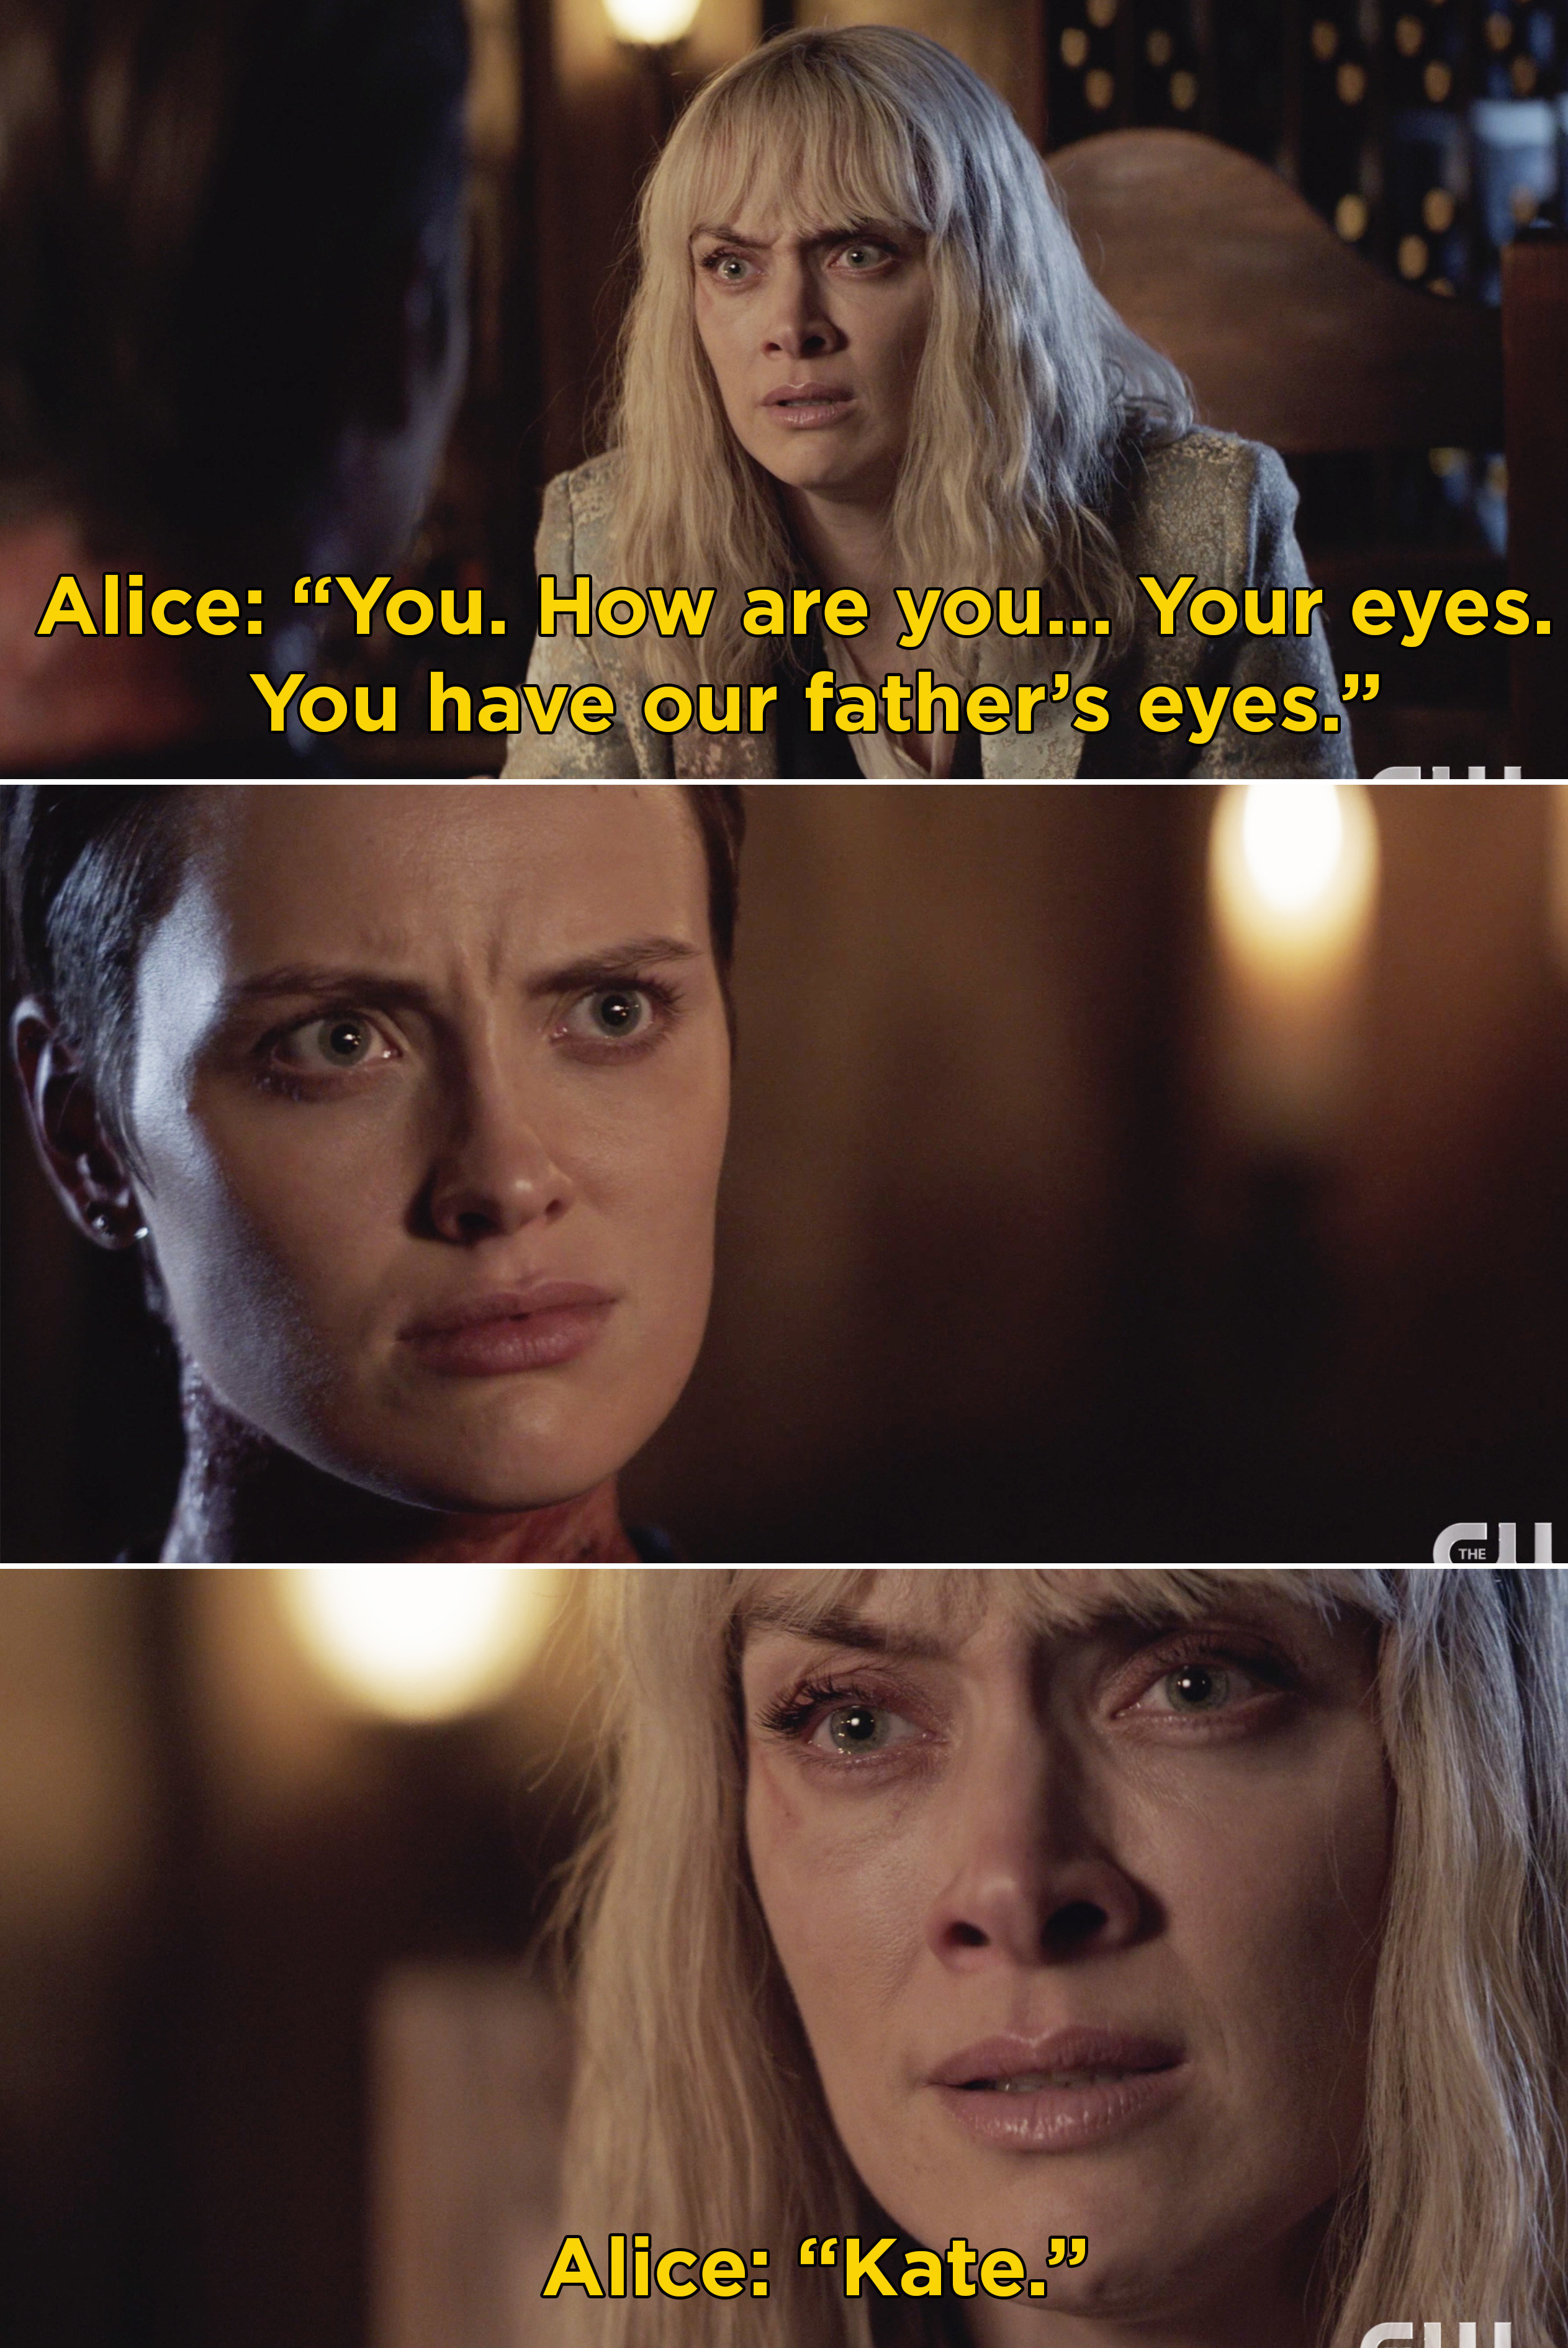 """Alice saying, """"You. How are you... Your eyes. You have our father's eyes. Kate"""""""